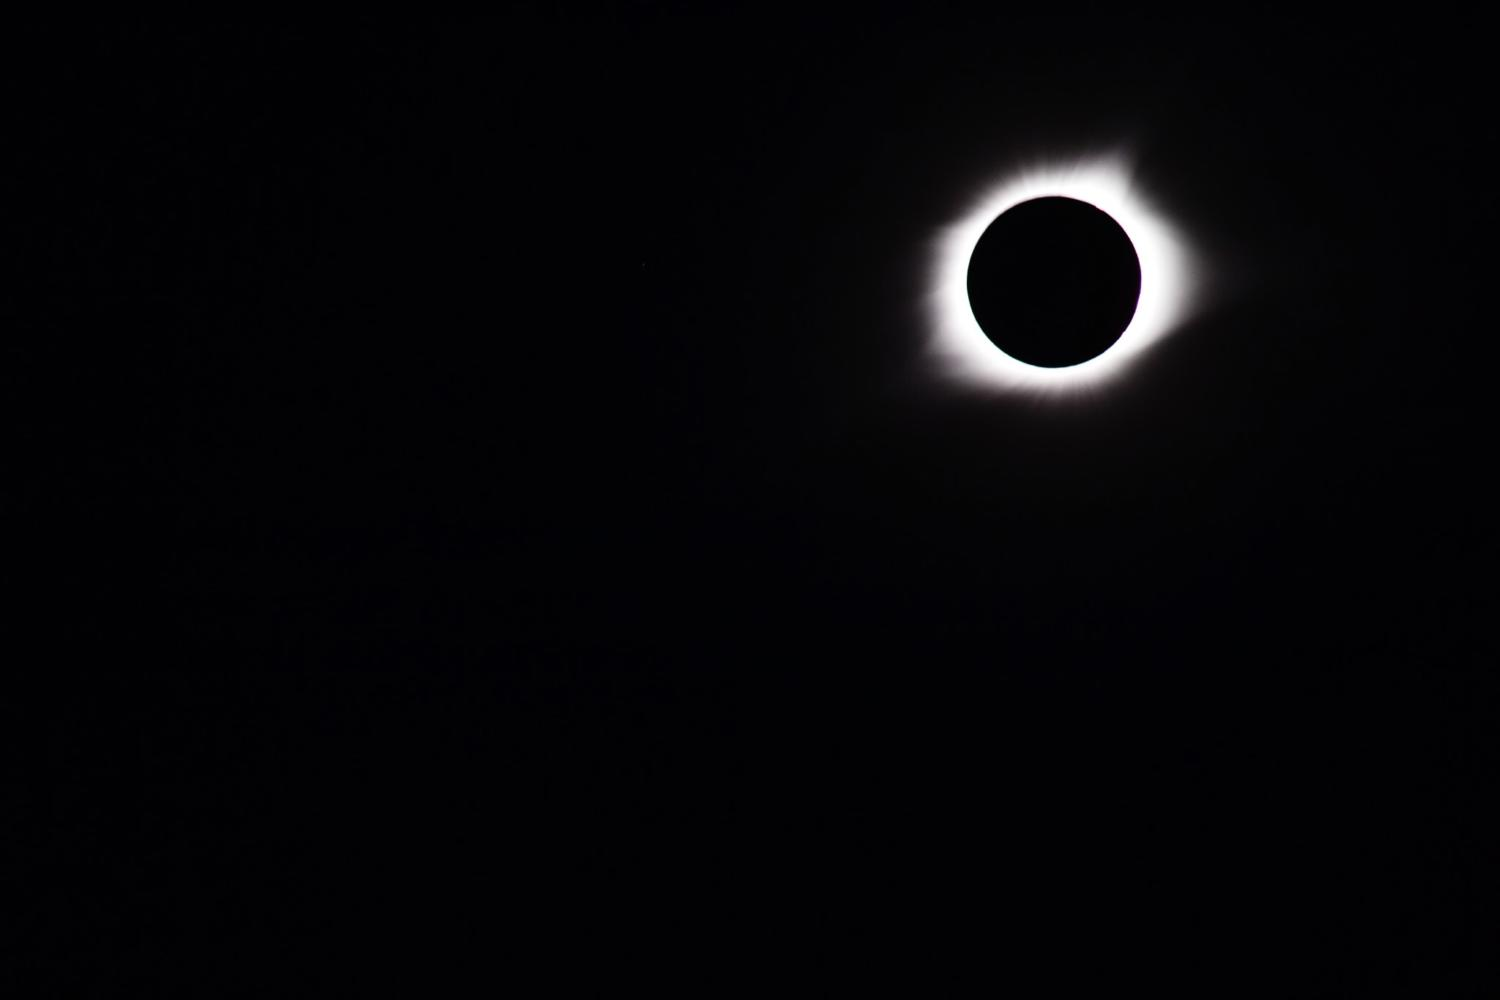 Total+Eclipse+8%2F21%2F17.++People+were+able+to+remove+their+eclipse+glasses.+This+picture+was+taken+with+the+solar+filter%2C+which+made+normal+light+impossible+to+see.++Being+able+to+see+the+outer+rays+of+the+sun+with+a+filter+shows+how+bright+the+sun+is%2C+regardless+of+an+eclipse.